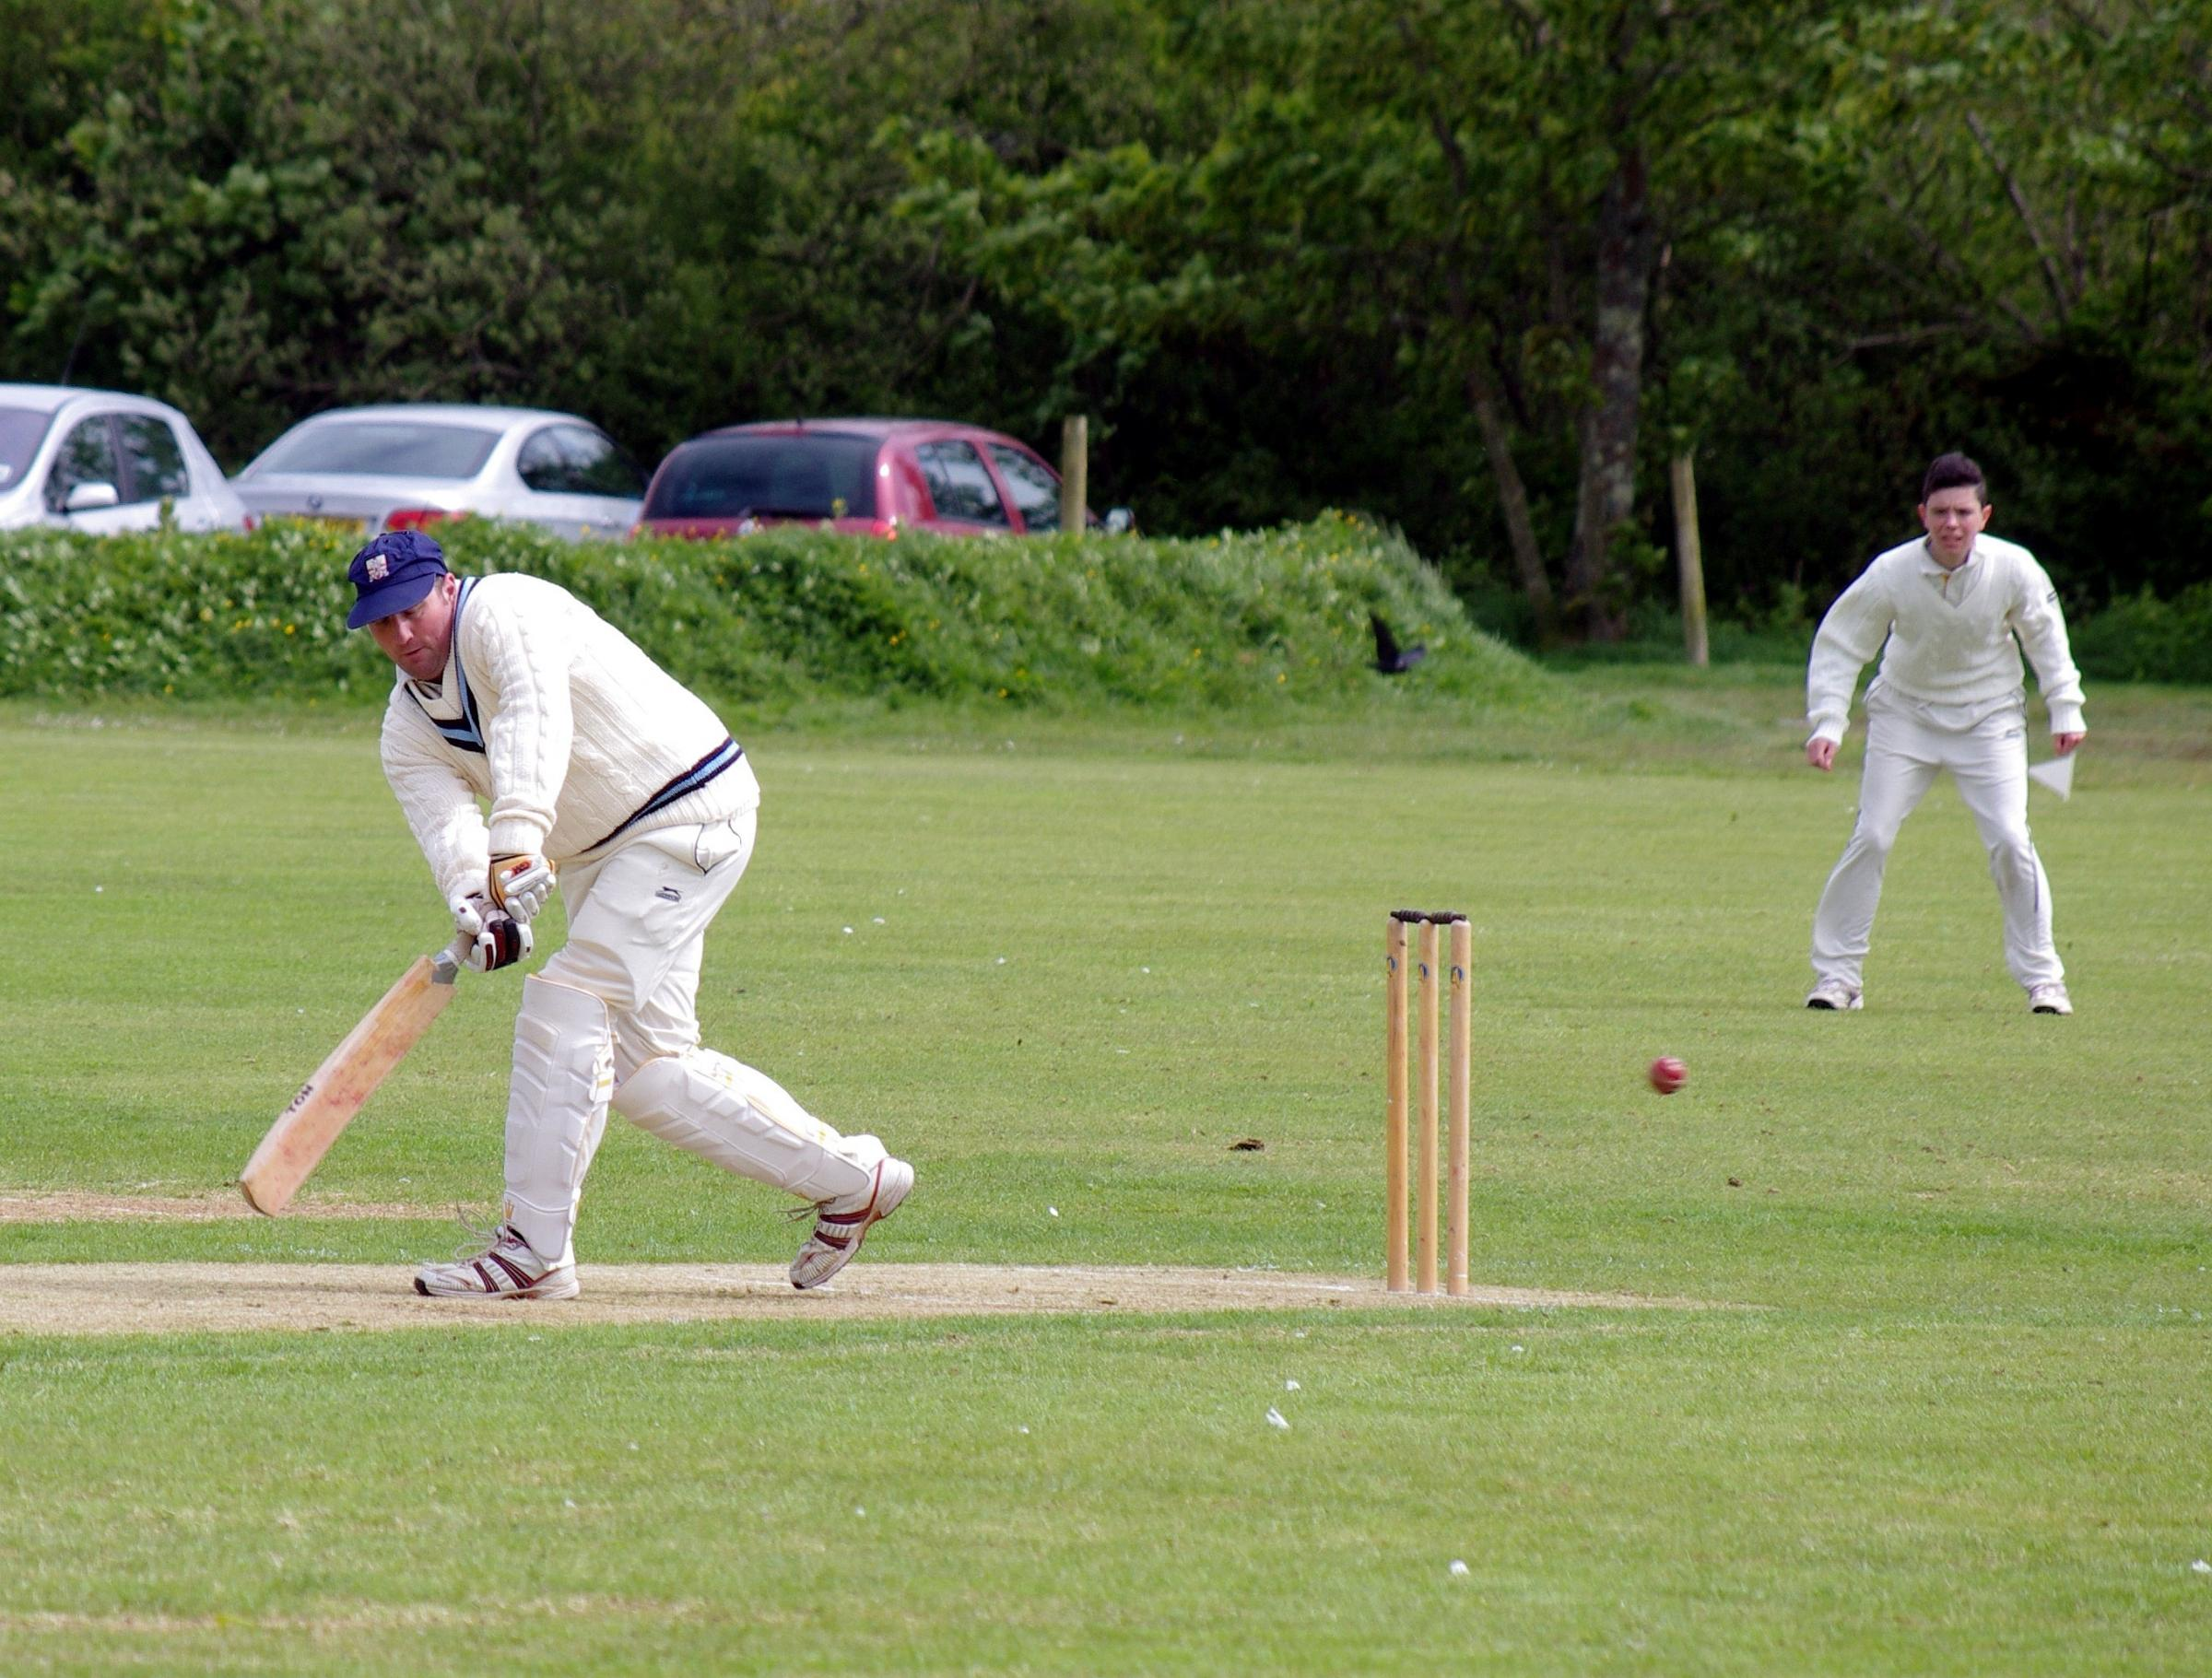 TOP SCORER: Simon Holliday top scored with 66 runs for Haverfordwest who beat St Ishmaels at the Racecourse. PICTURE: Western Telegraph. (6105200)